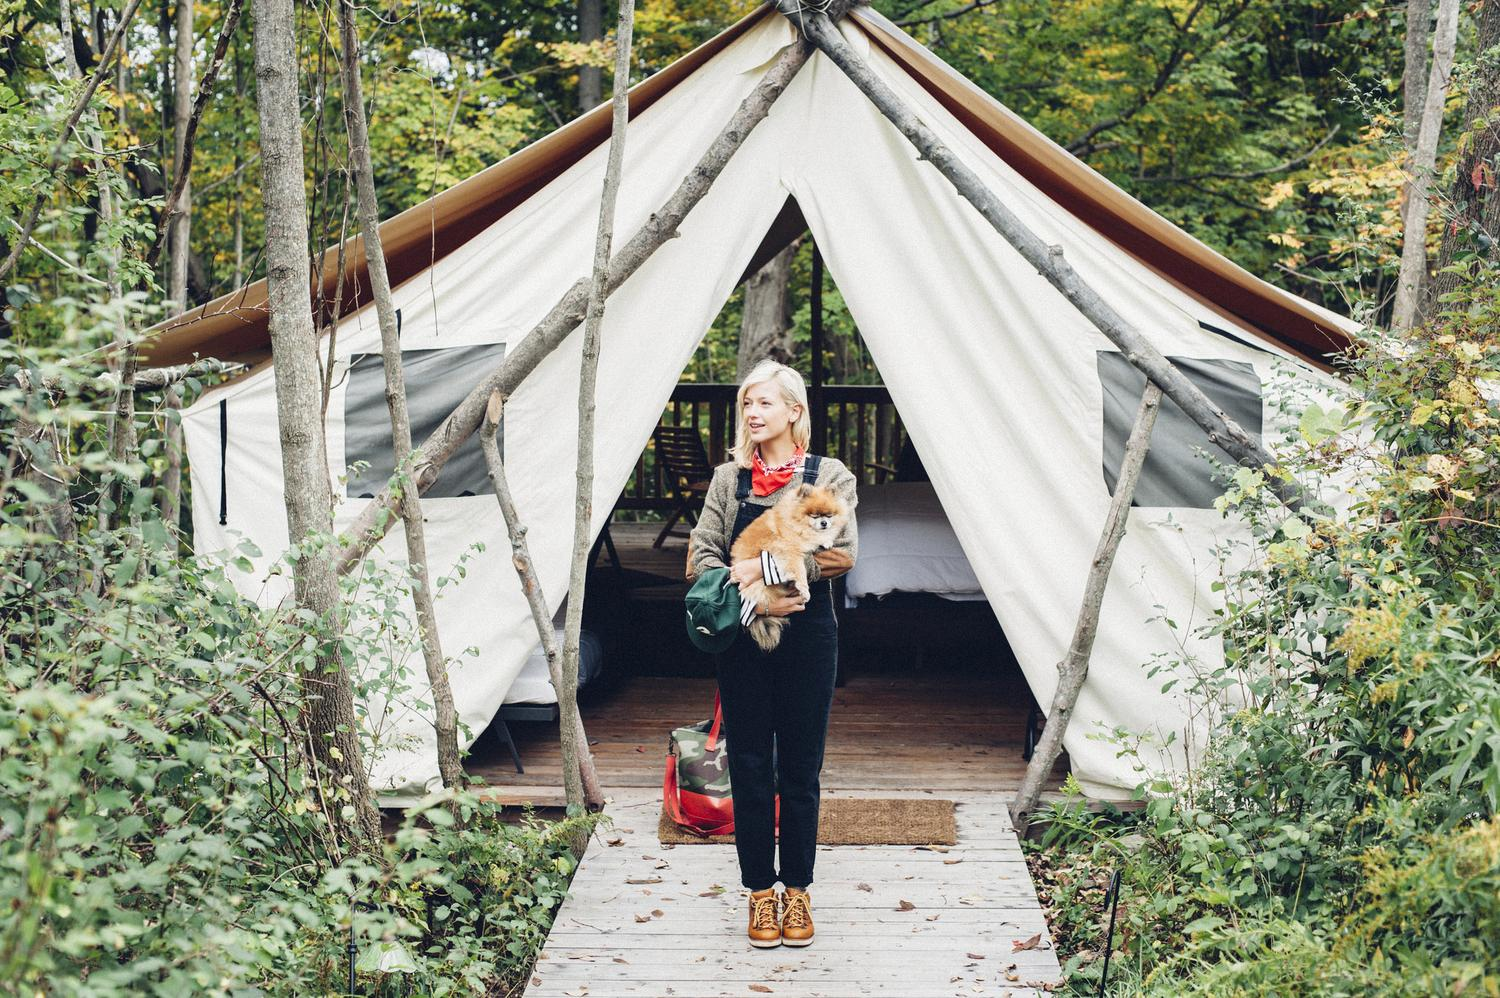 The Ultimate Guide To Glamping Around the Globe